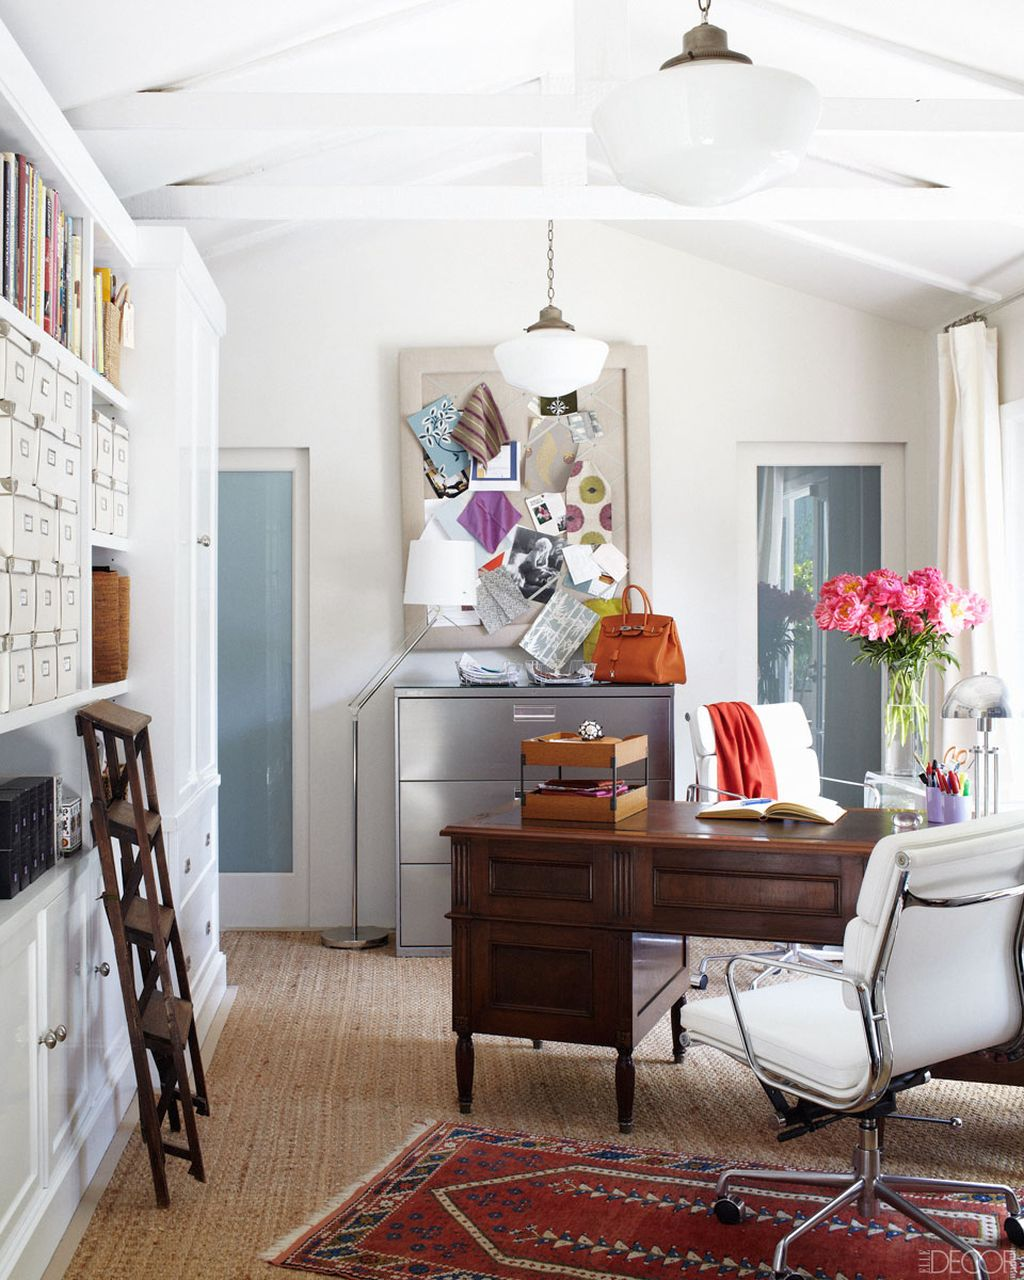 Small Home Office Room: 20 Inspiring Home Office Design Ideas For Small Spaces